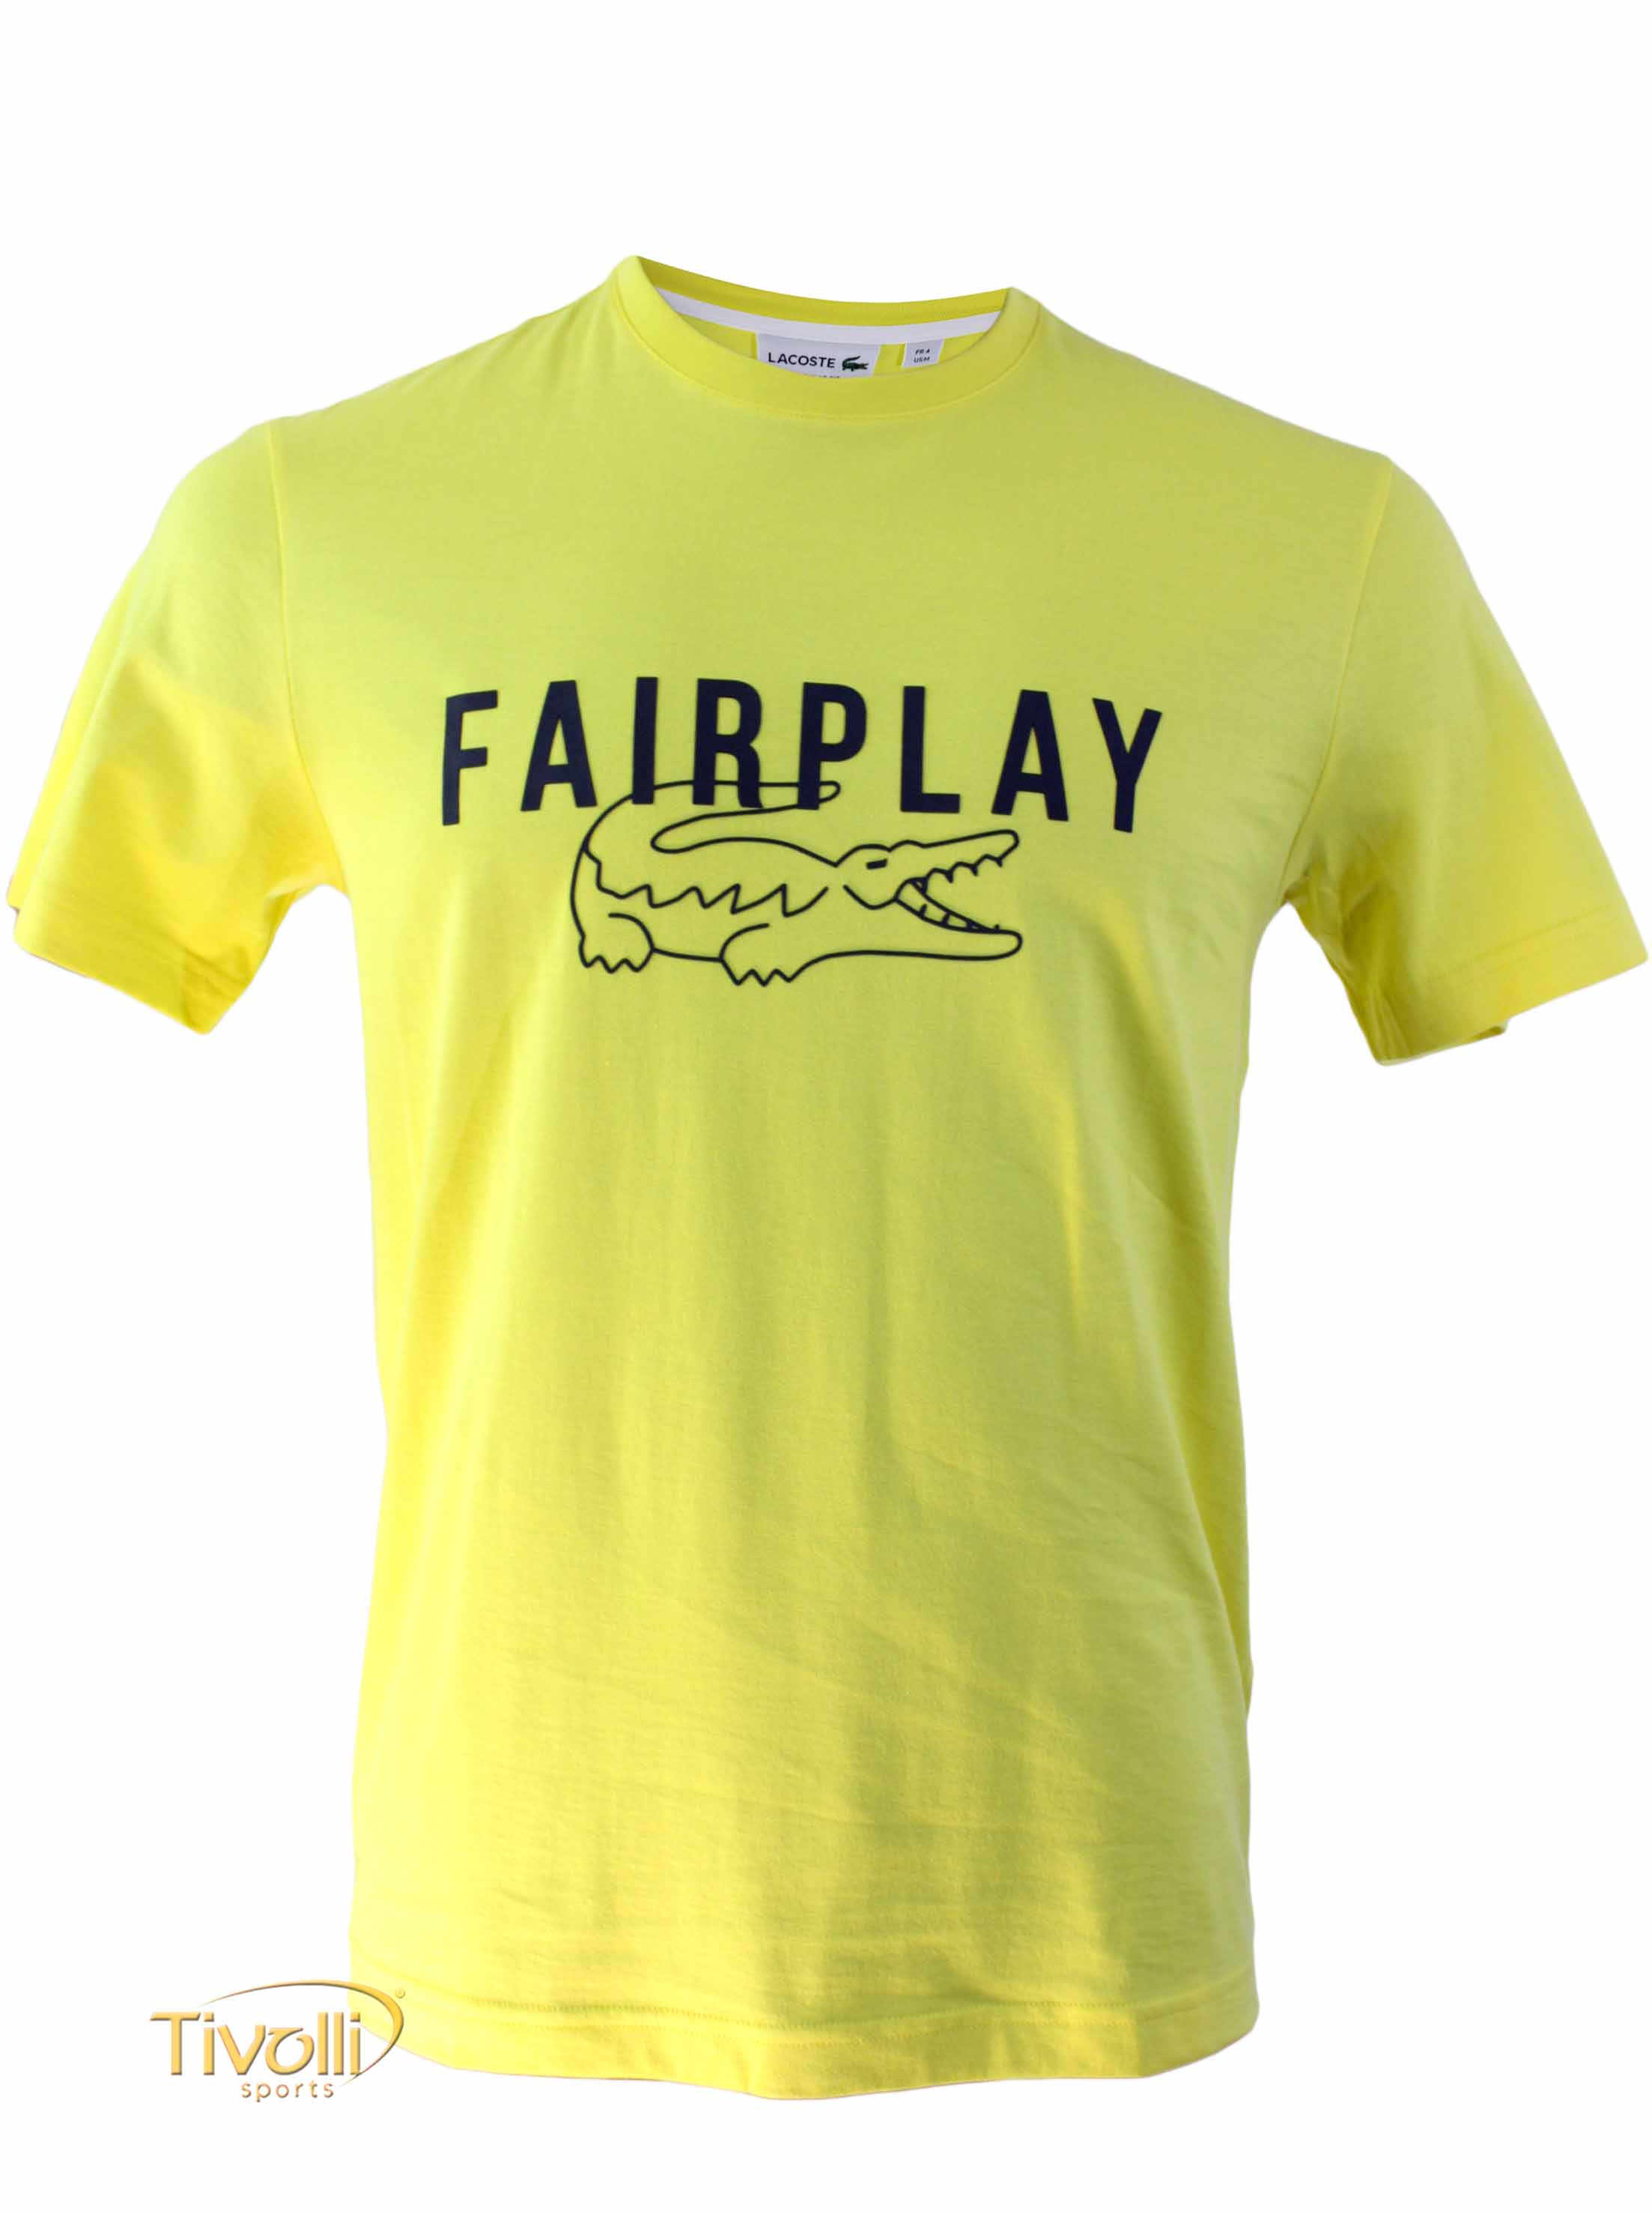 Camiseta Lacoste Fairplay